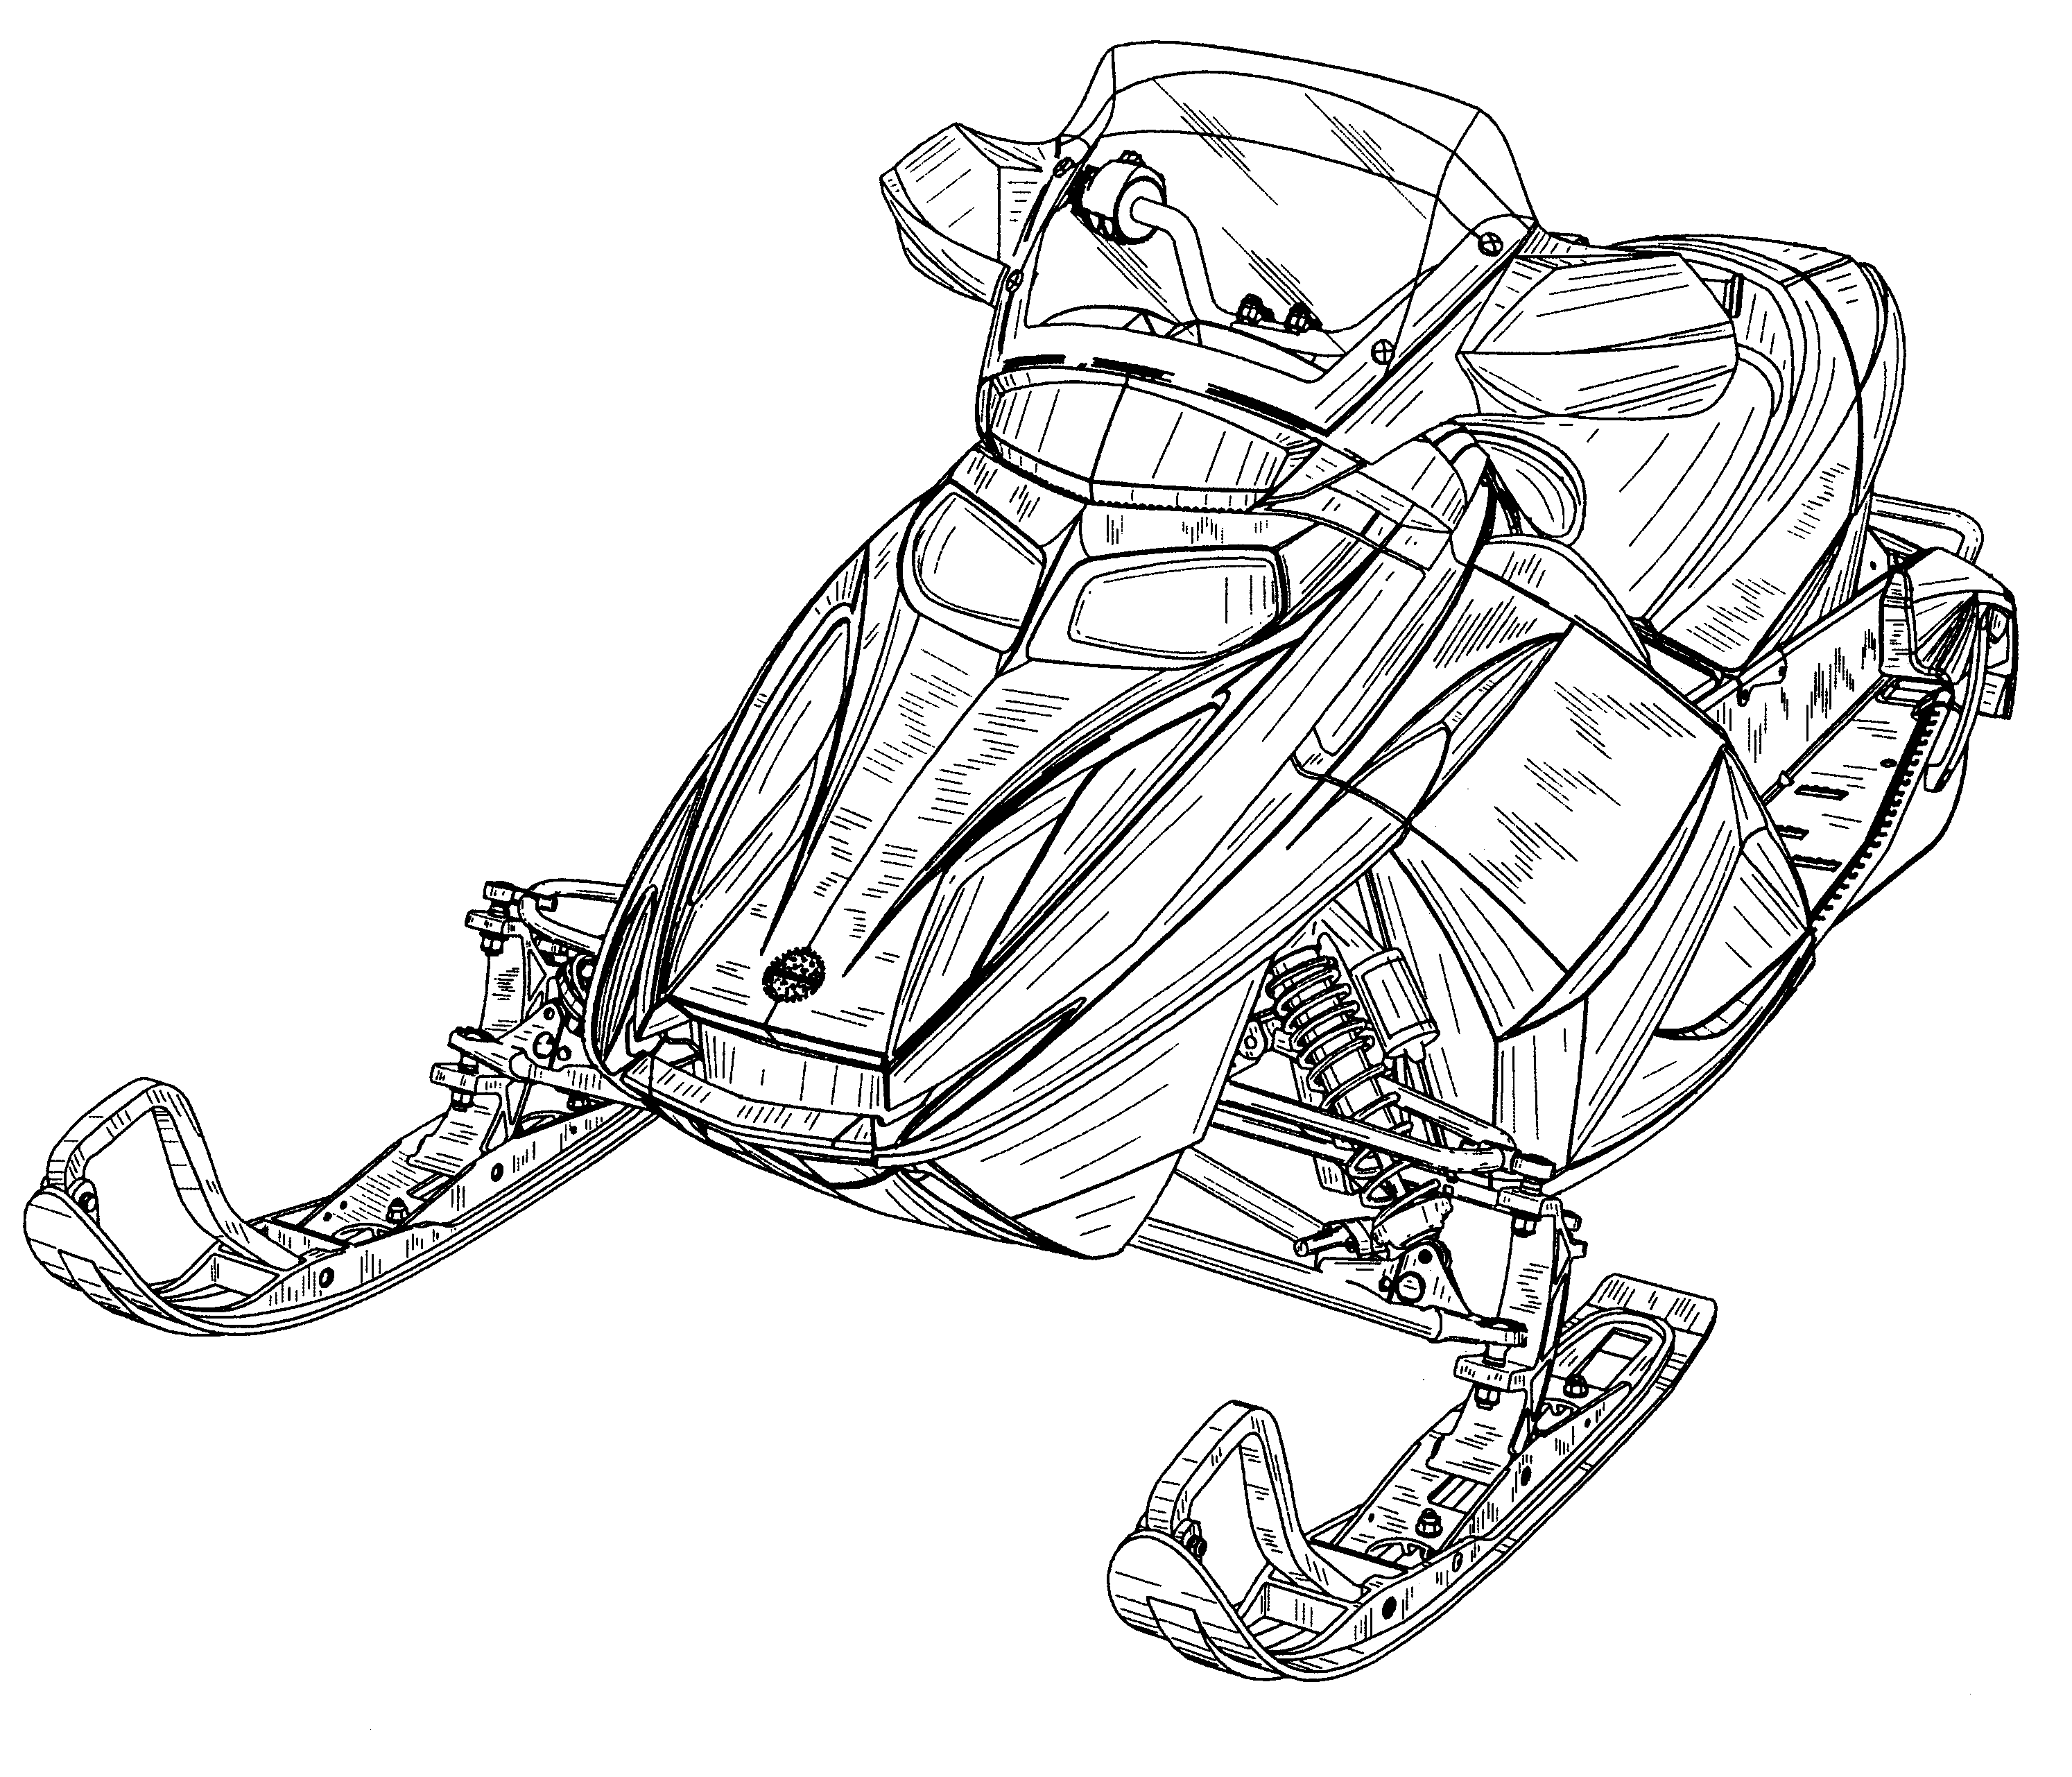 snowmobile coloring pages - photo#33